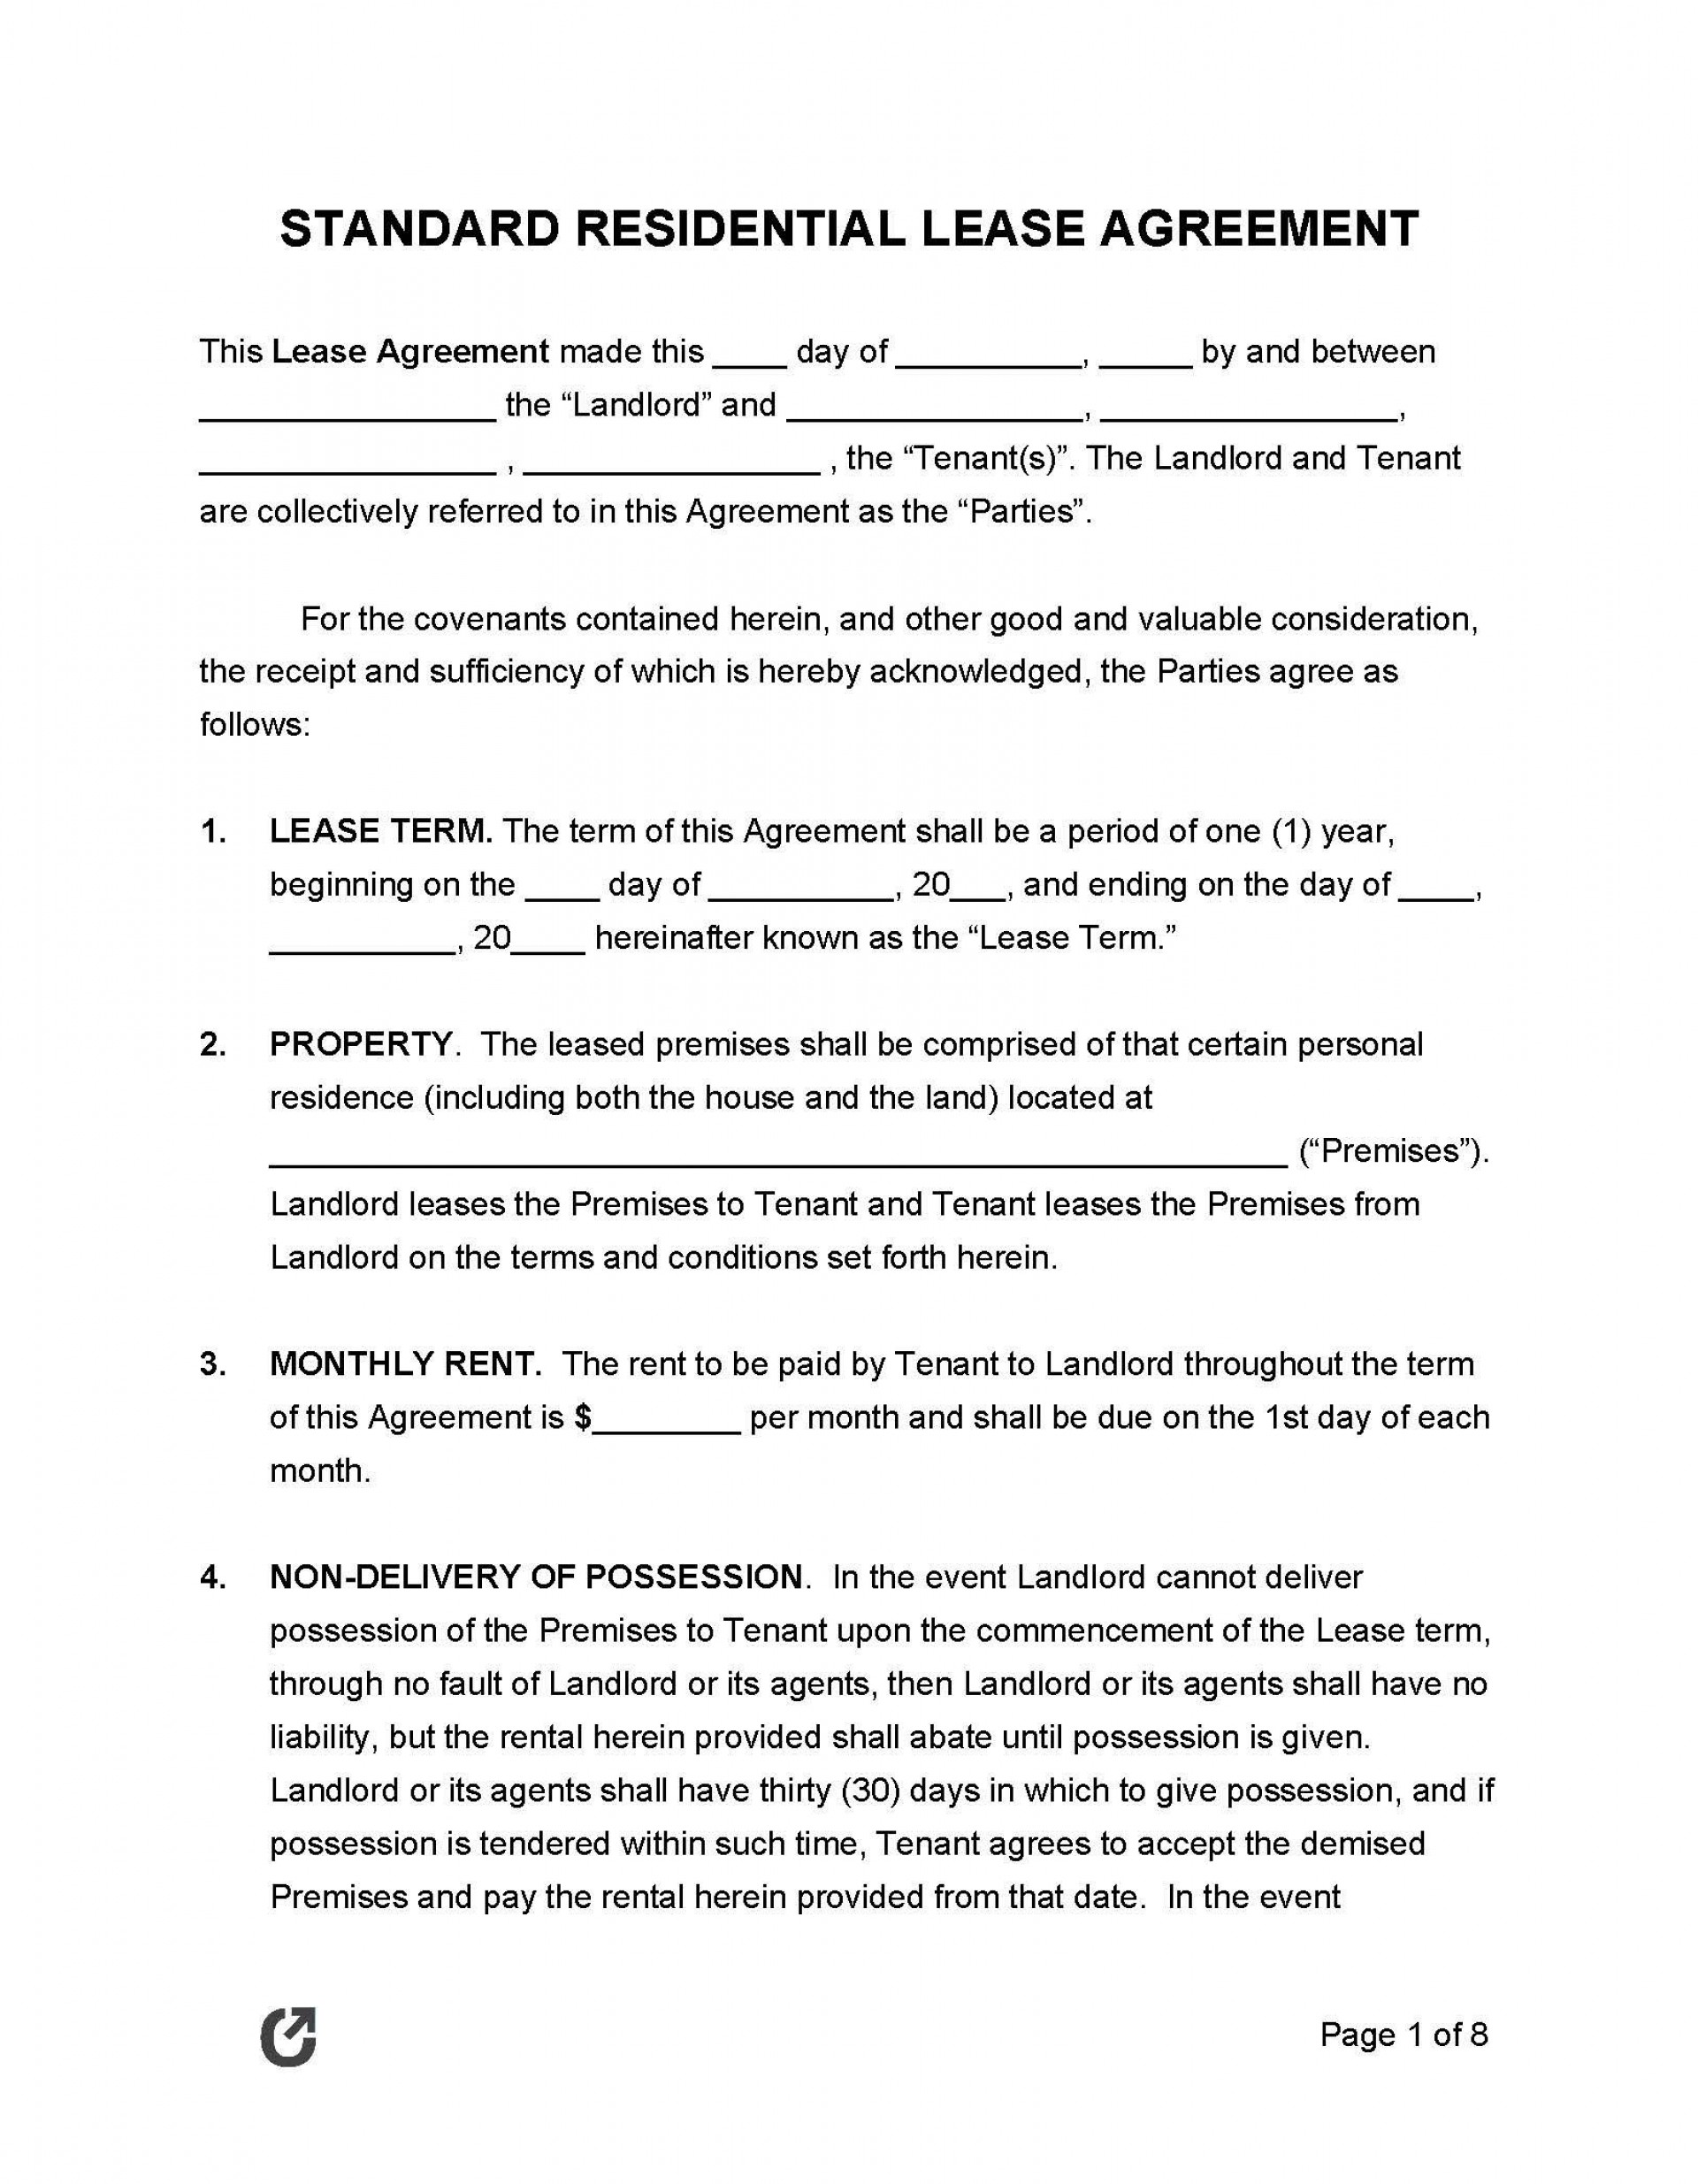 007 Imposing Landlord Contract Template Free Image  Rental Simple Flat Resident Tenancy Agreement1920